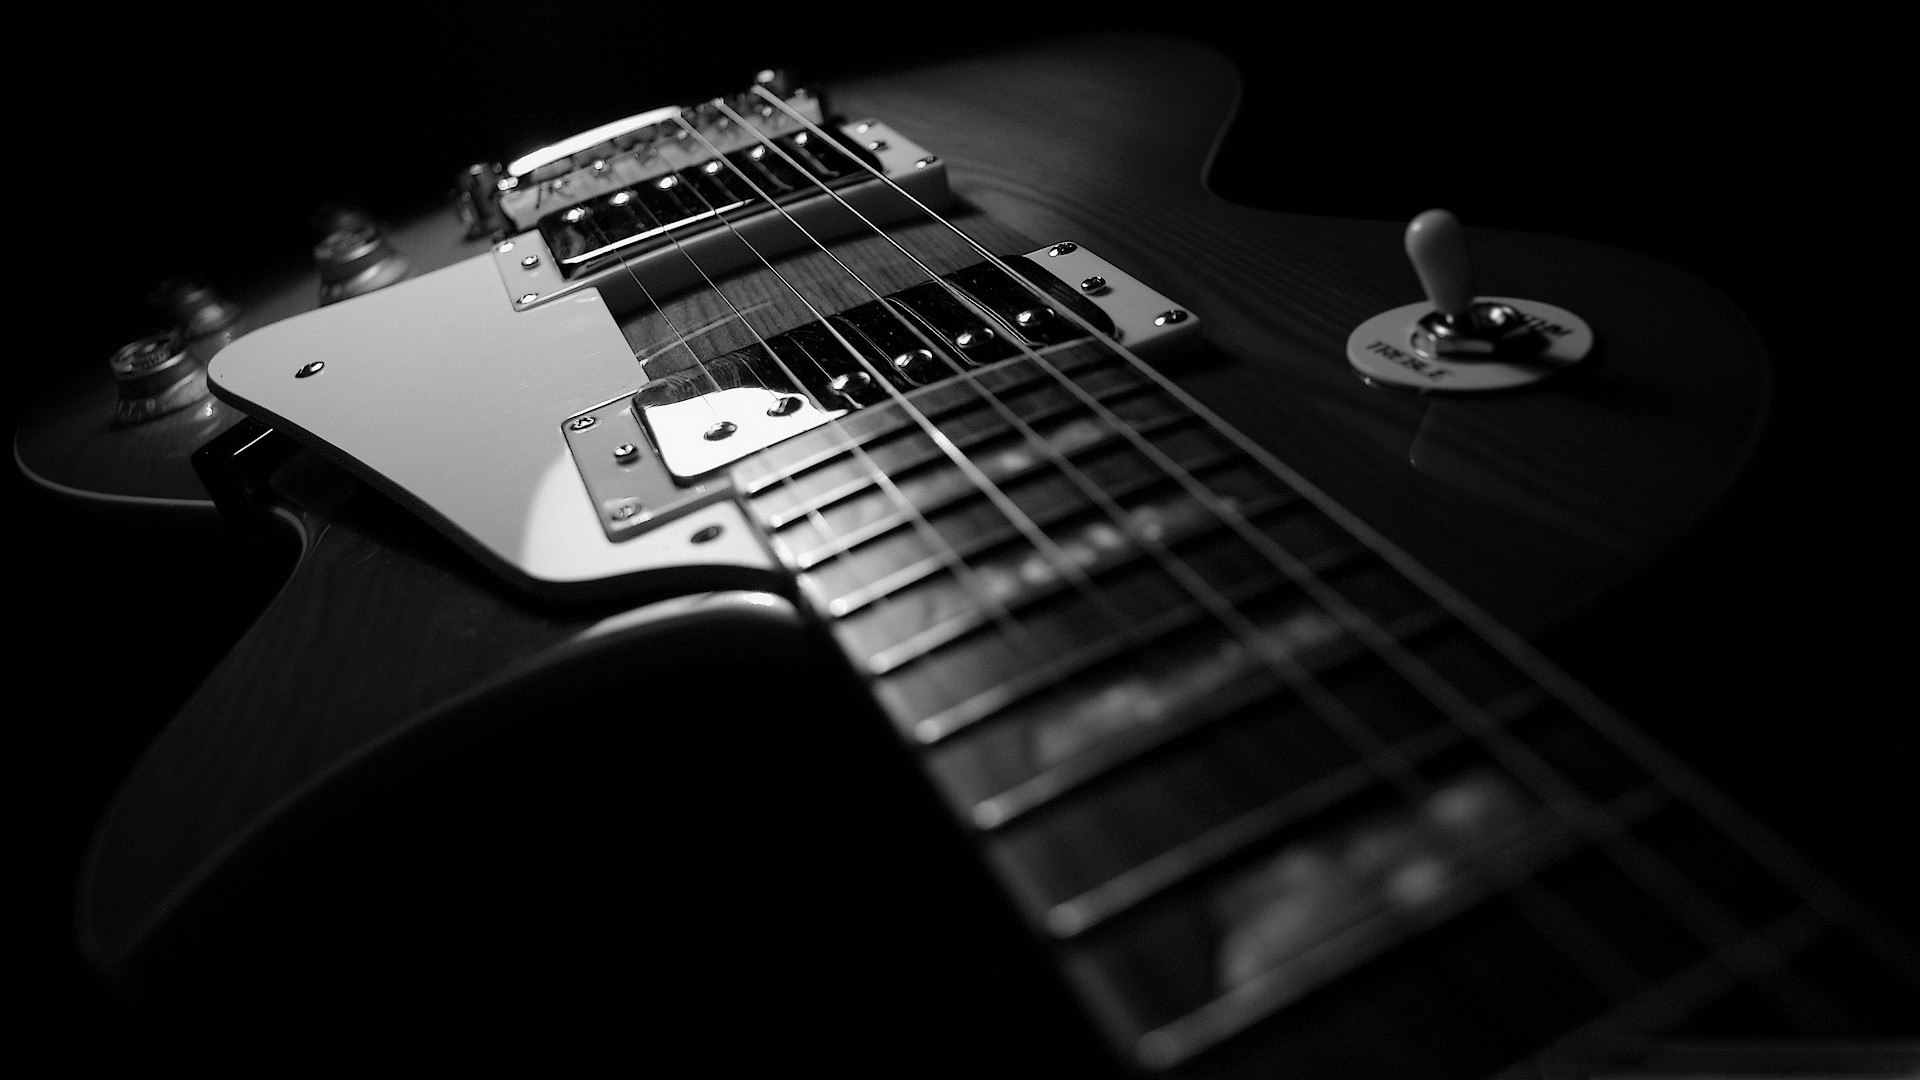 Guitar Wallpaper Widescreen